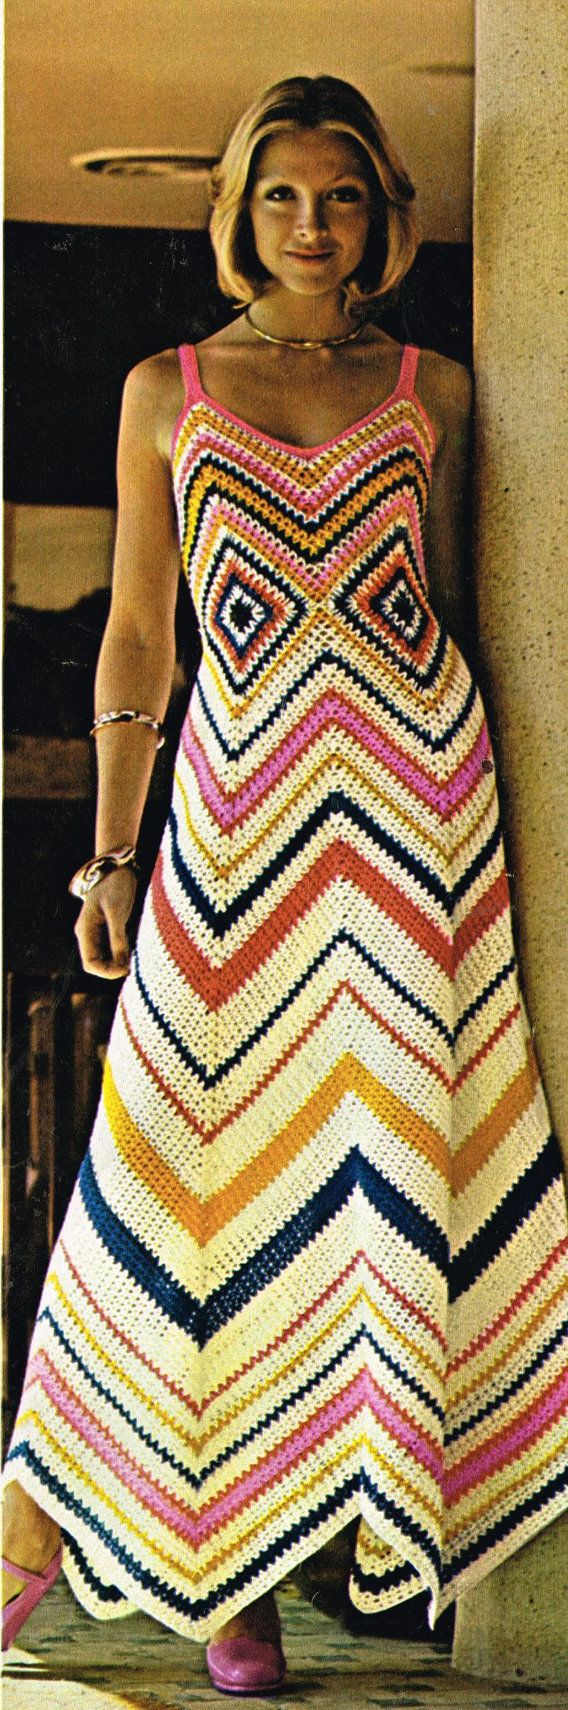 VCP315 ladies maxi dress  crochet summer wear  for ladies vintage pattern PDF instant download on Etsy, $2.08